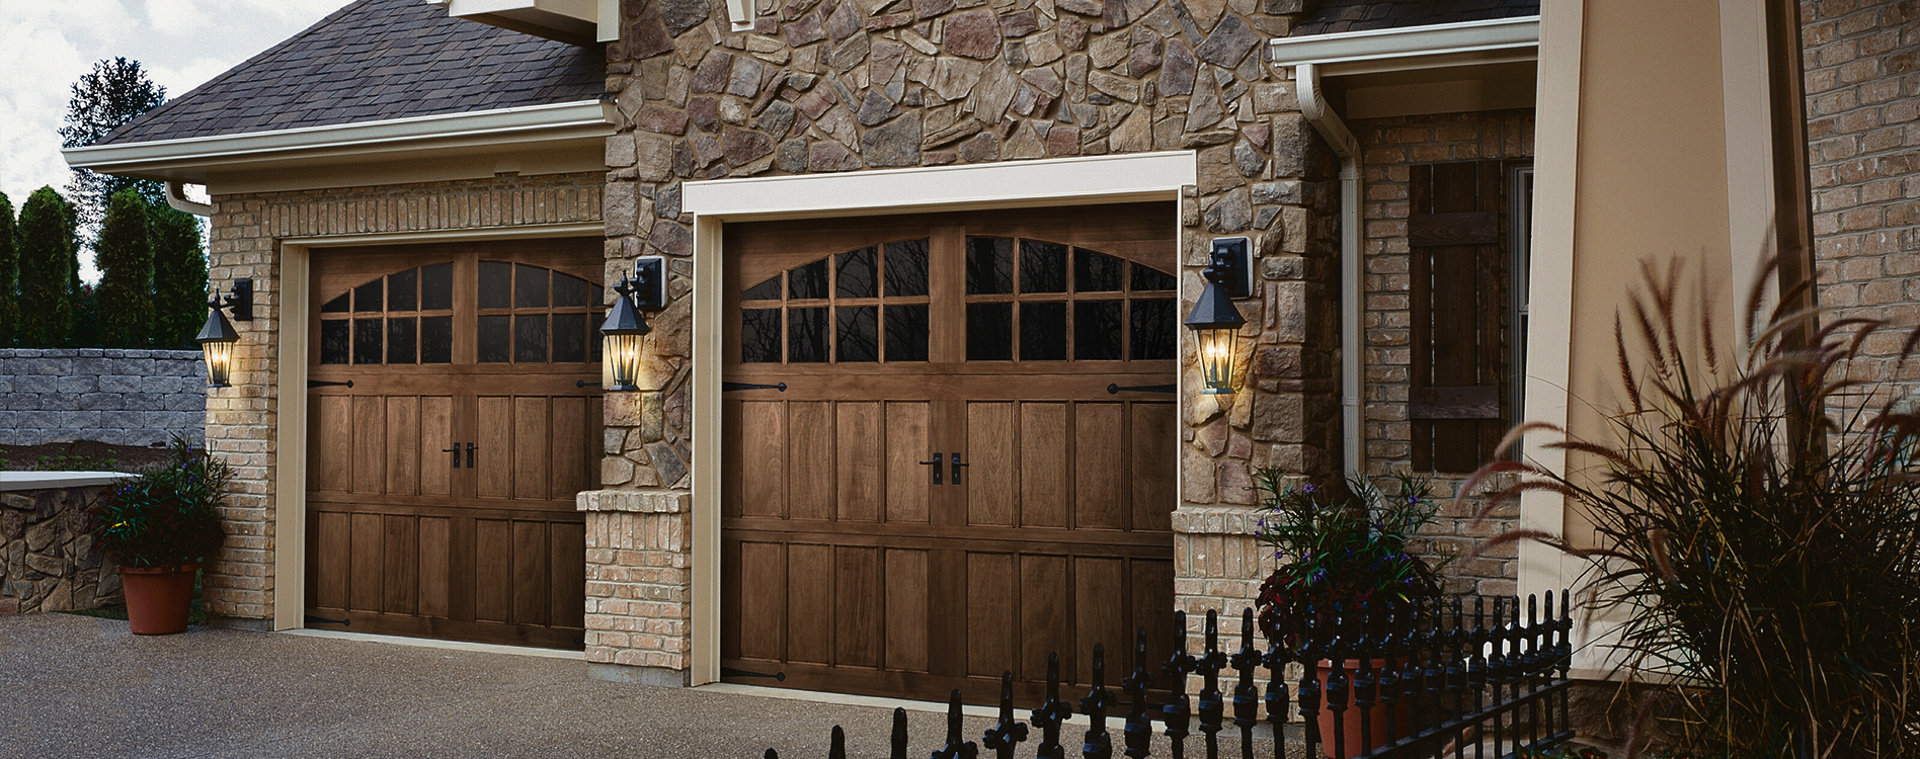 Garage Door Contractor in Northern Utah serving Logan, Brigham City and Tremonton